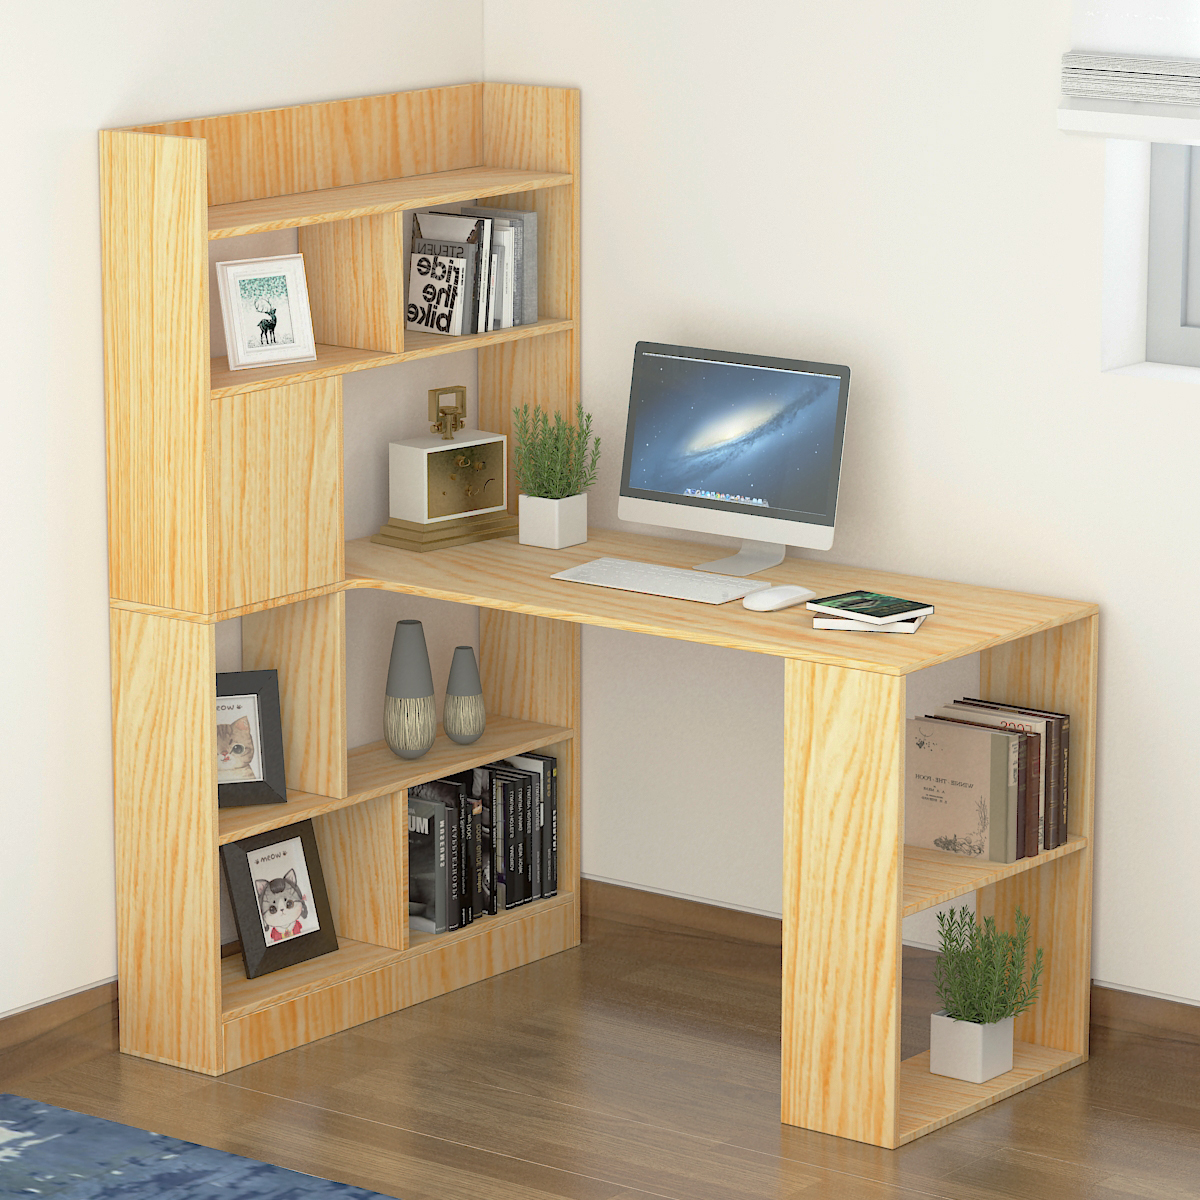 Image of: Modern Computer Desk With Storage Bookshelf Computer Desk With 5 Tier Storage Shelf Large Home Office Desk Study Writing Table For Small Space Workstation With Corner Bookshelf Oak Walmart Com Walmart Com